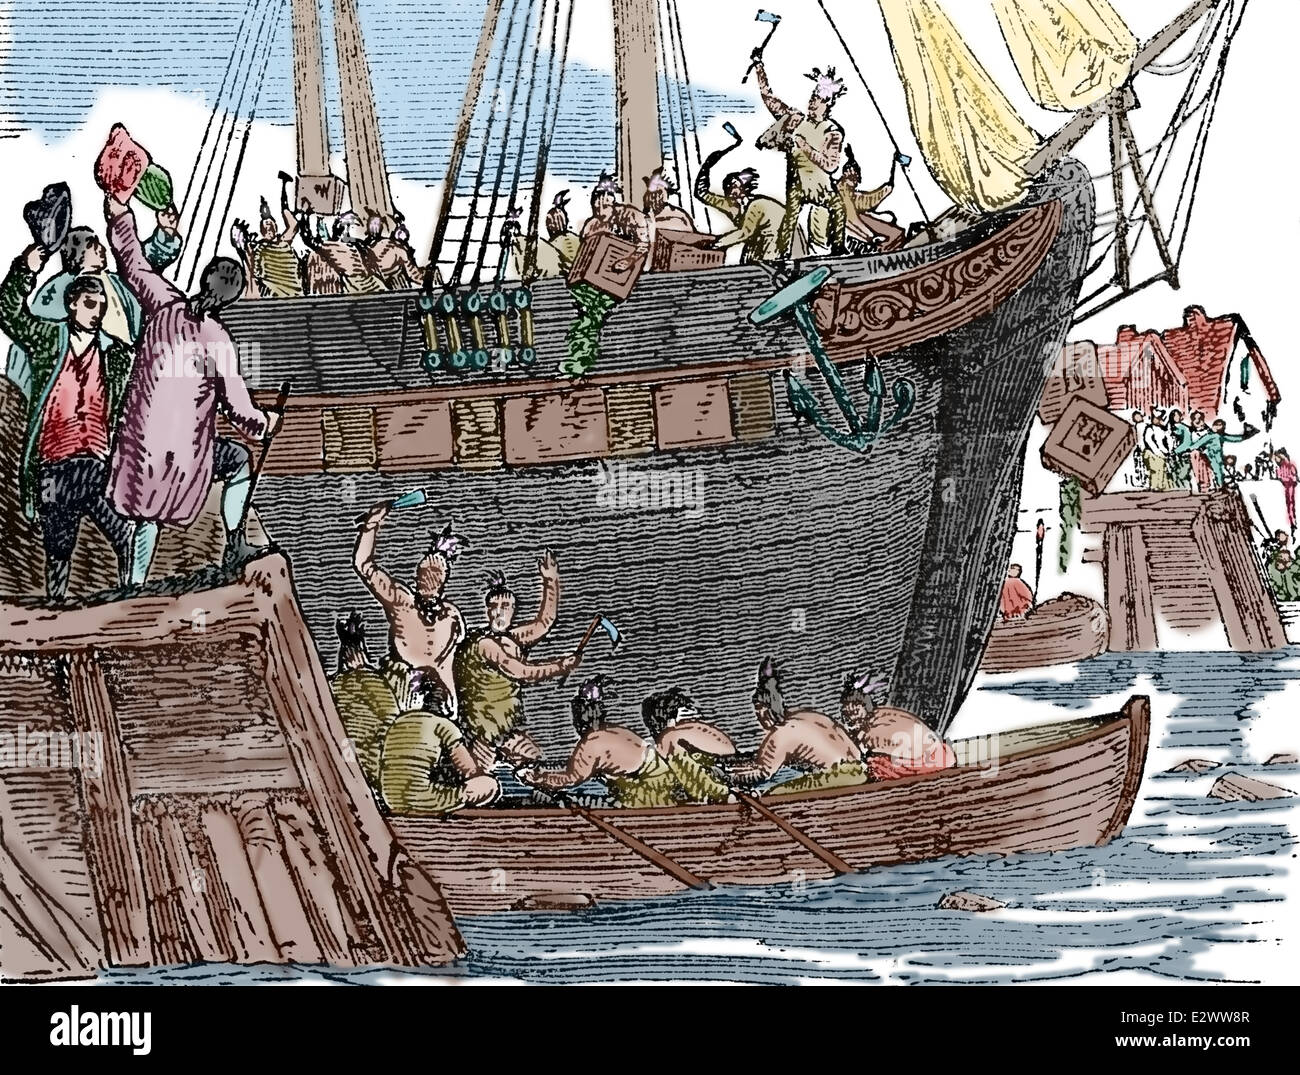 the boston tea party 16 december 1773 history of the united states stock photo 70639431 alamy. Black Bedroom Furniture Sets. Home Design Ideas